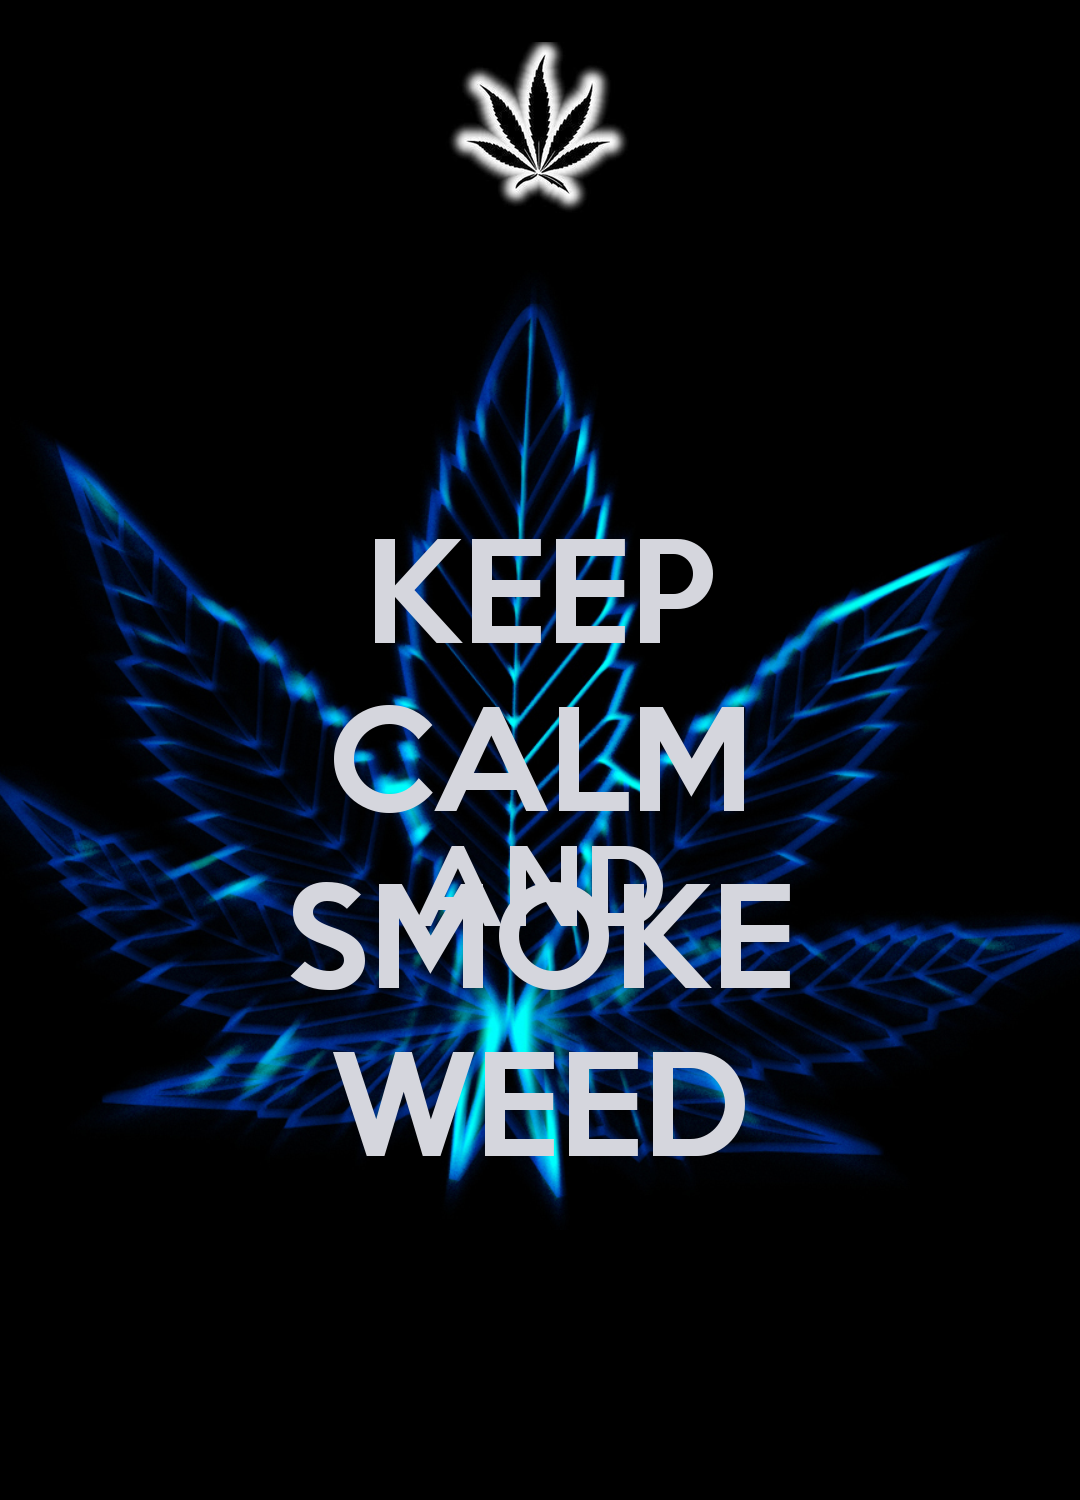 Superieur Keep Calm And Smoke Weed Wallpaper Cool HD   Http://wallawy.com